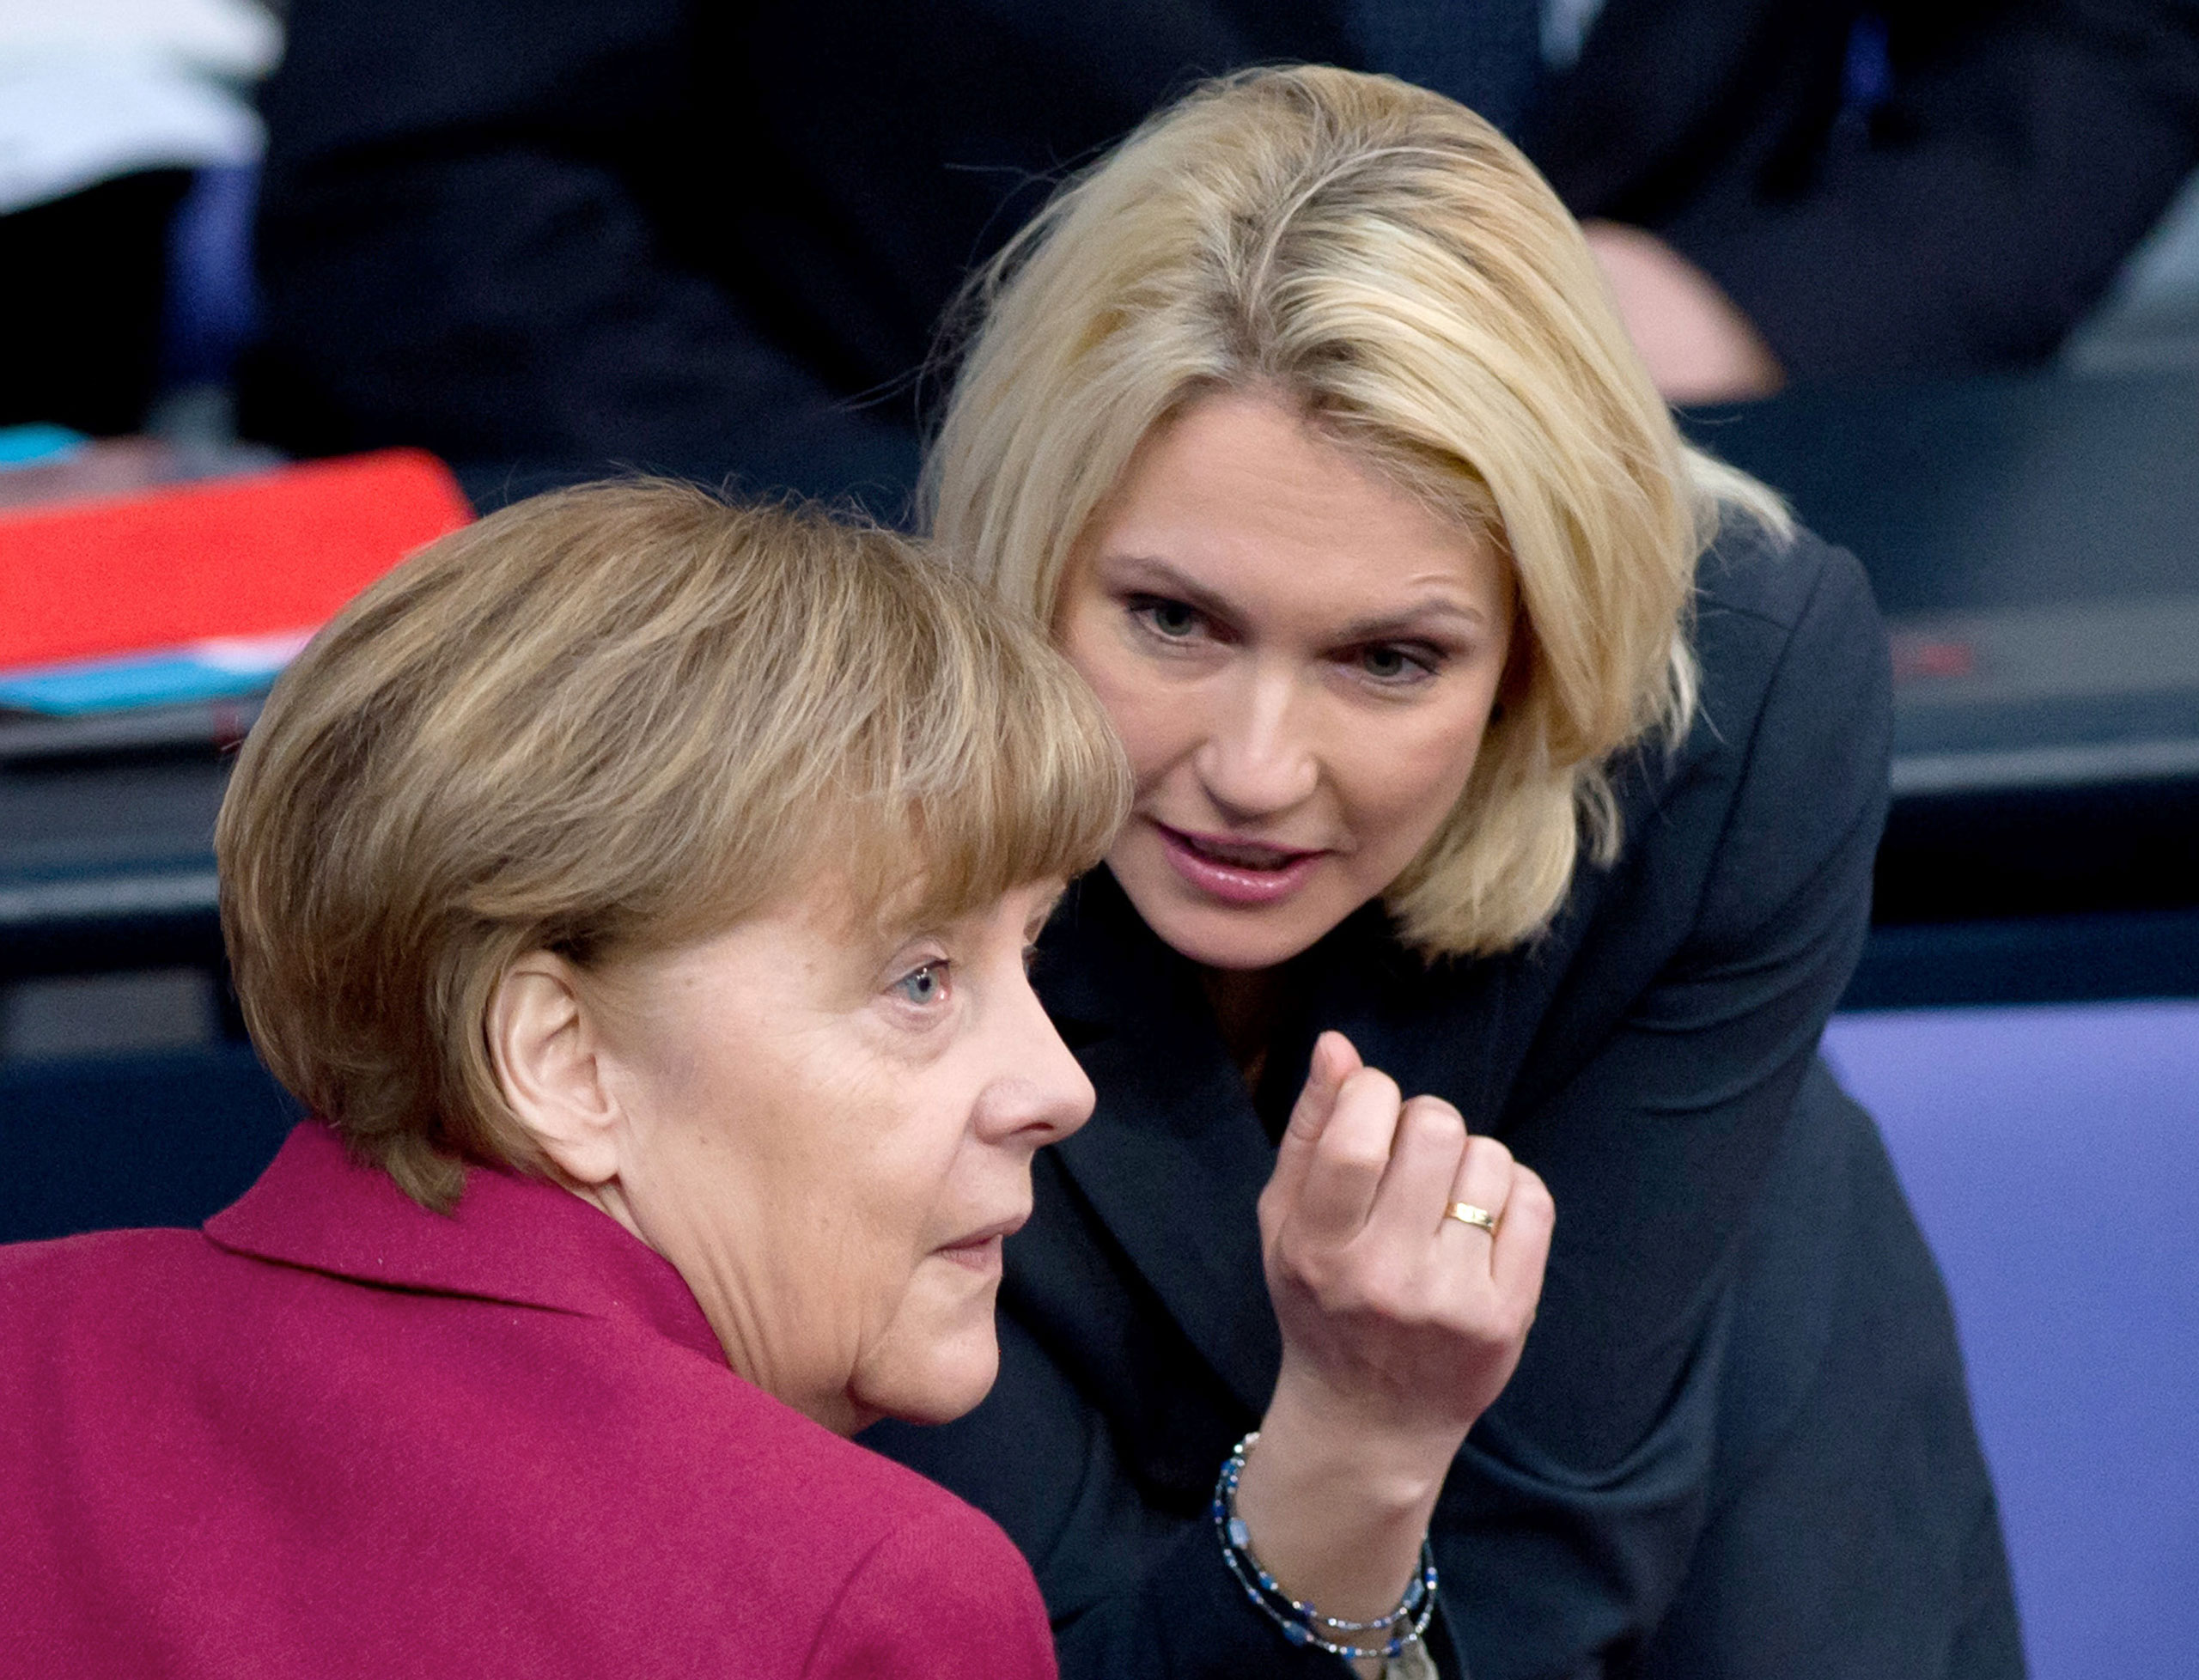 German chancellor Angela Merkel, left, and German Minister of Family Affairs Manuela Schwesig talk during a session of parliament in Berlin, March 6, 2015.